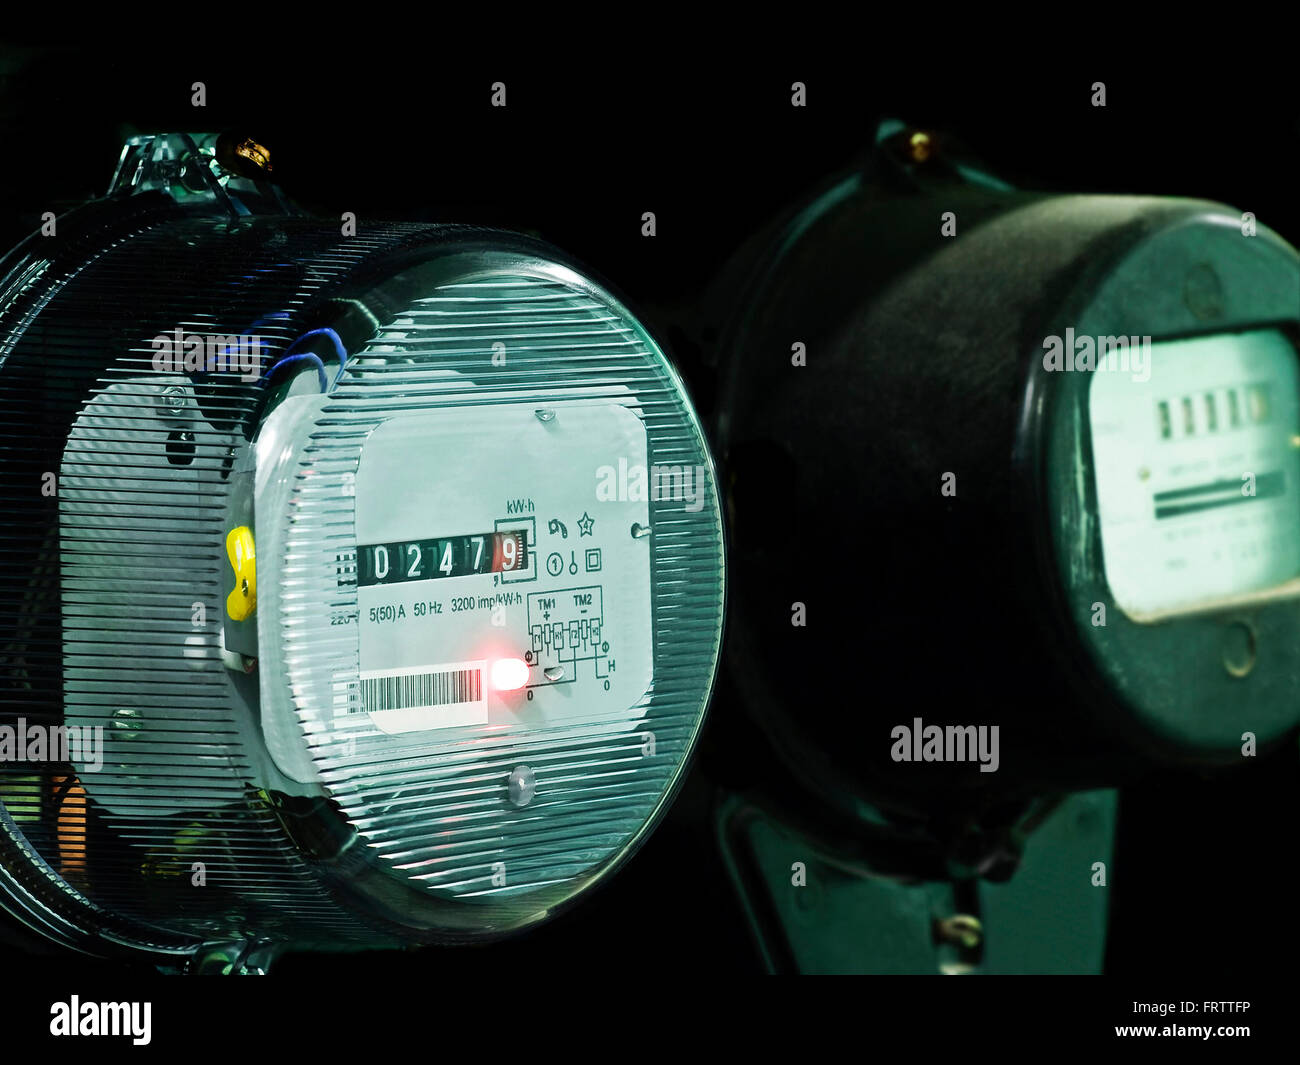 two electricity supply meters - Stock Image